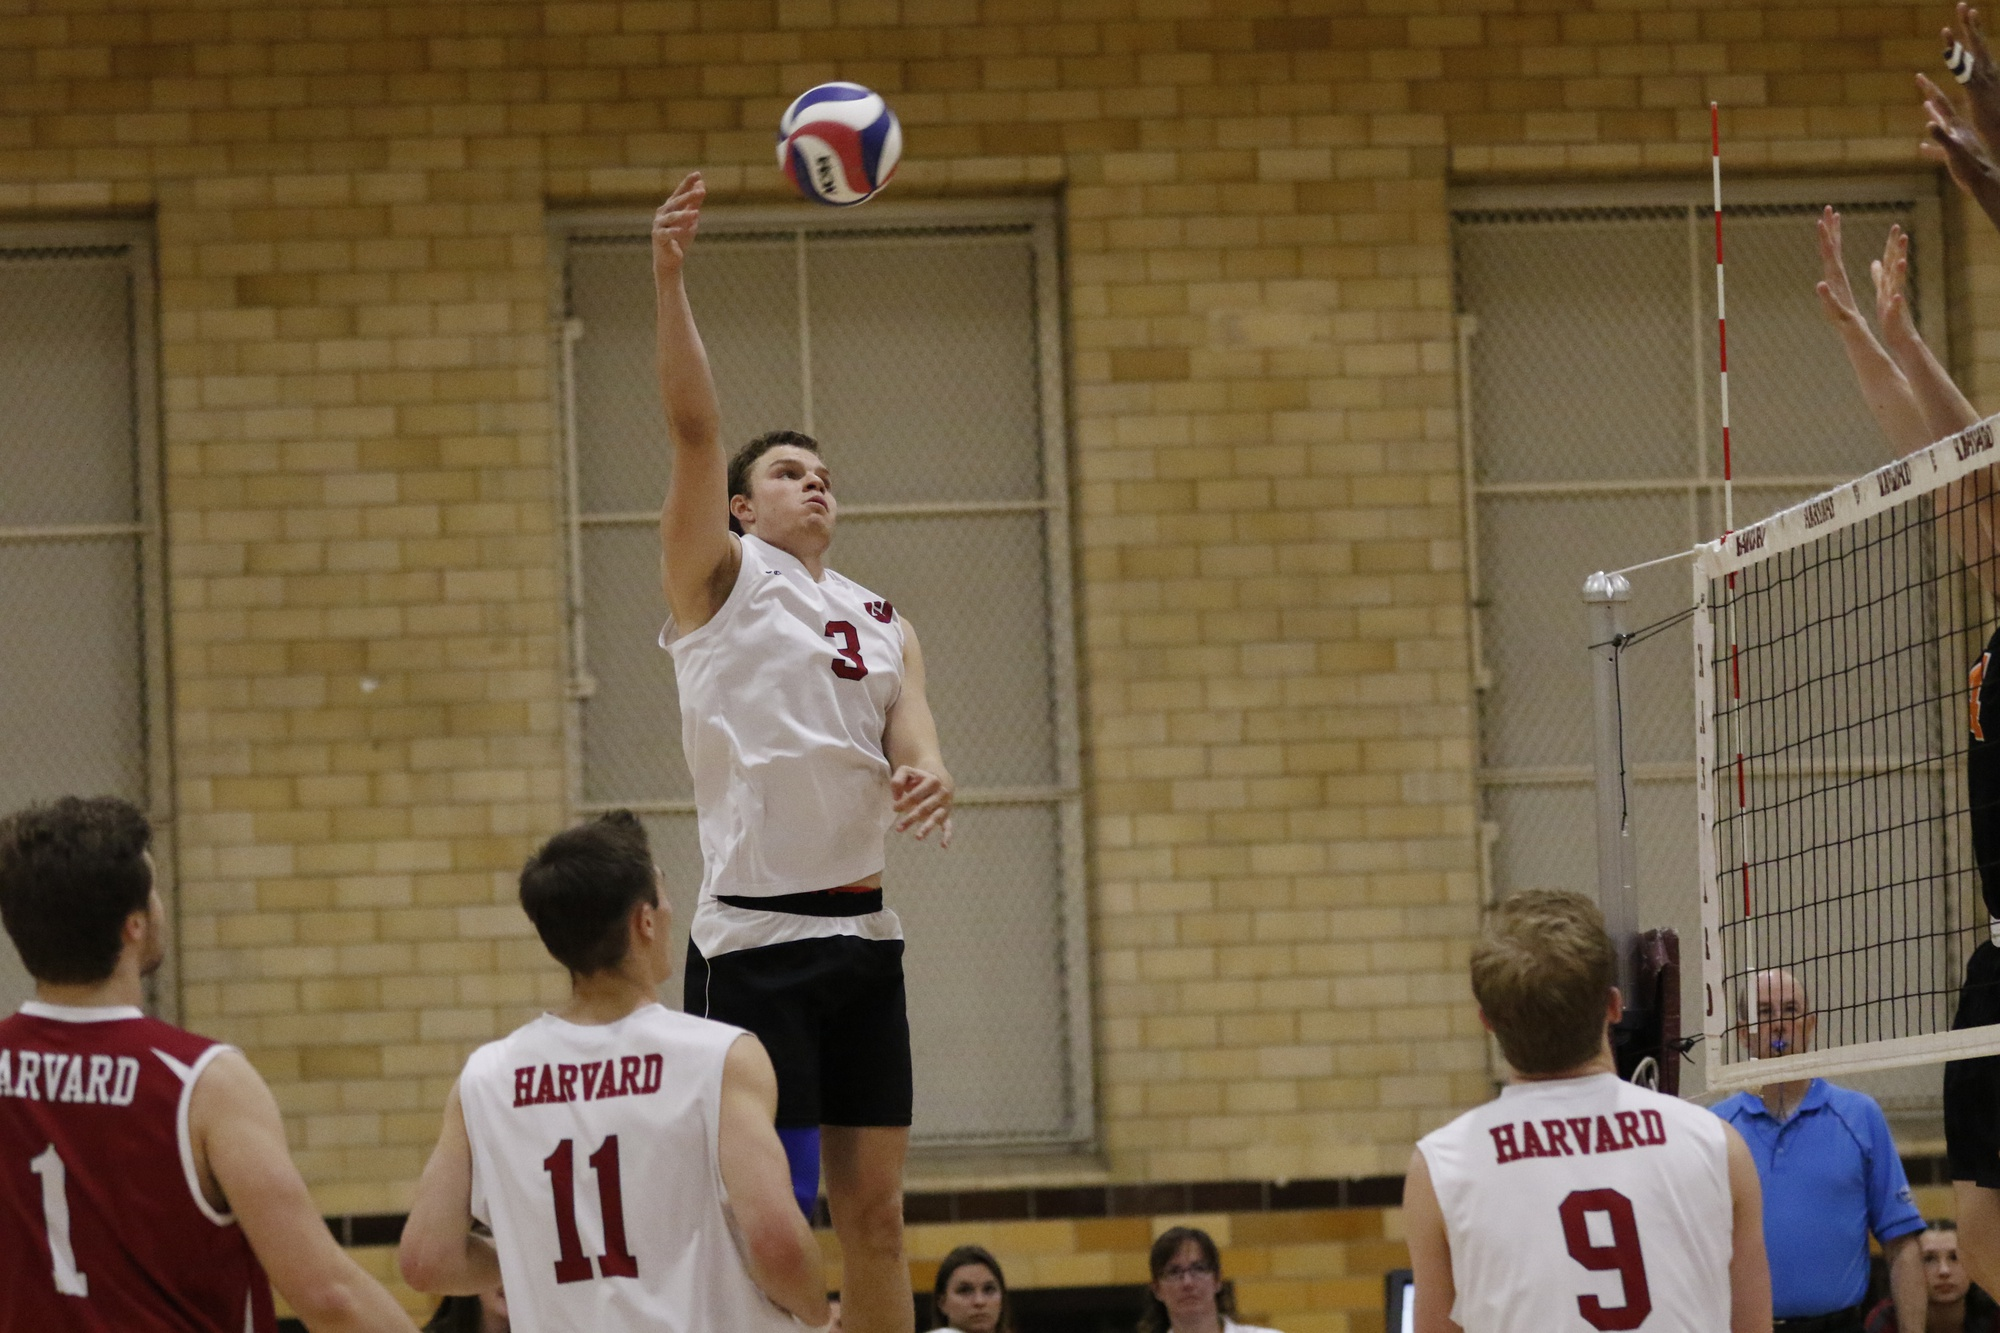 Senior Brad Gretsch spikes the ball against Princeton earlier this month, a match-up the Crimson ultimately took 3-2.